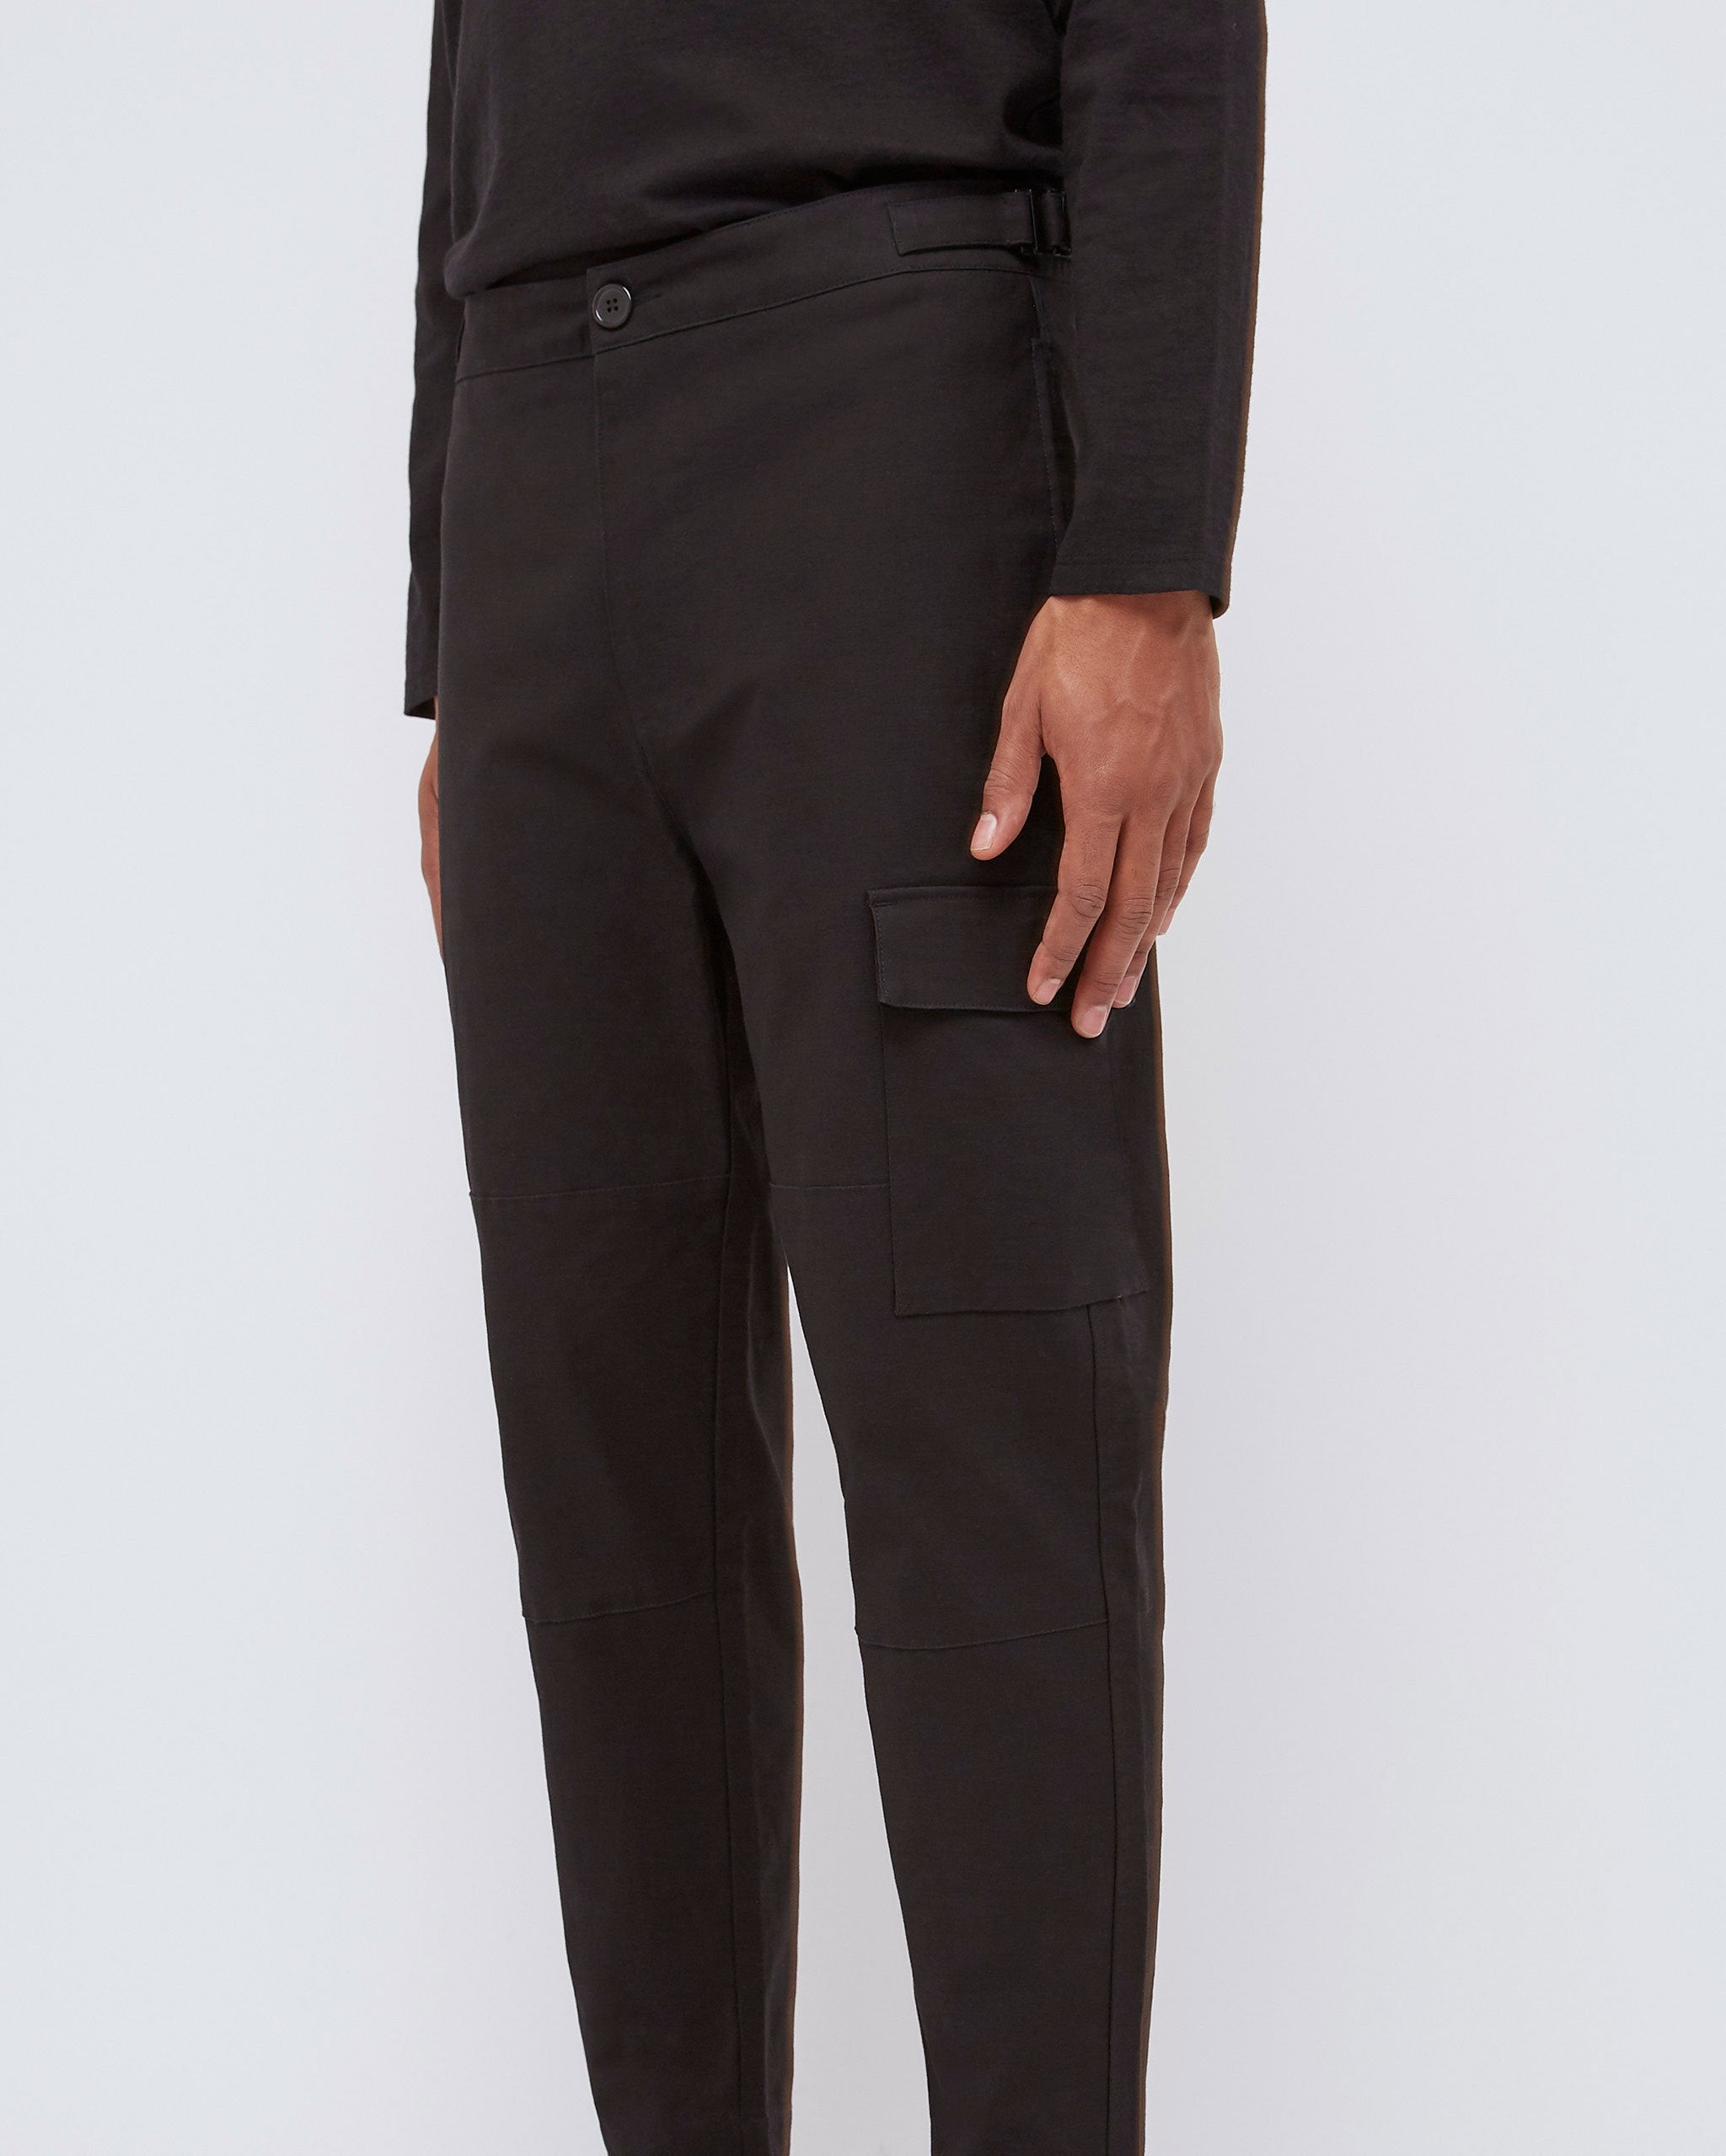 The Arabella Pant In Black